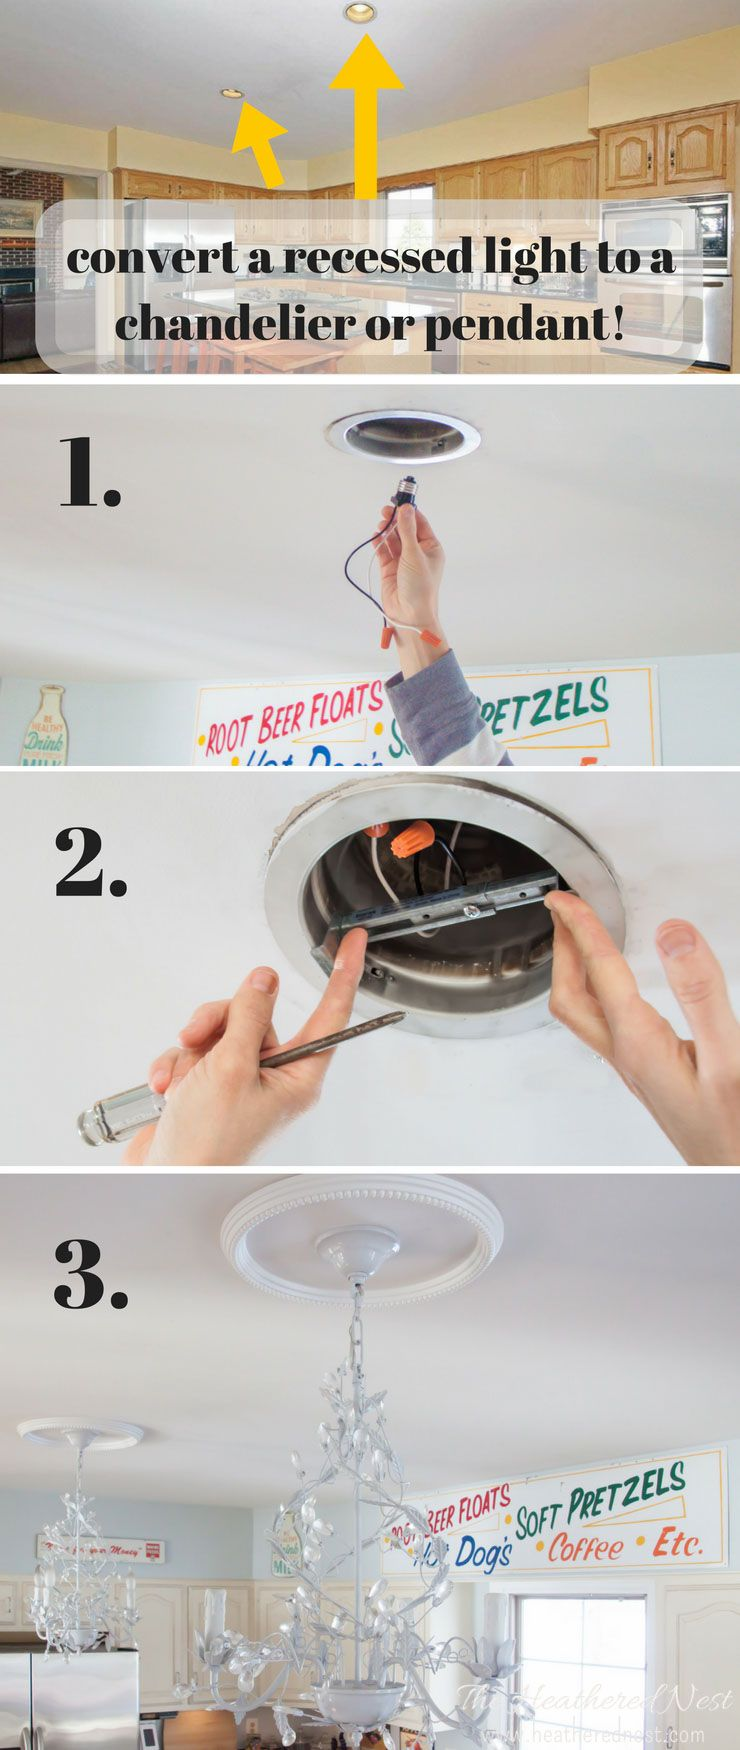 How to change a light fixture using a recessed light conversion kit using a recessed light convertion kit is an easy way to update your lighting well show you the diy method of how change a light fixture using this kit arubaitofo Choice Image